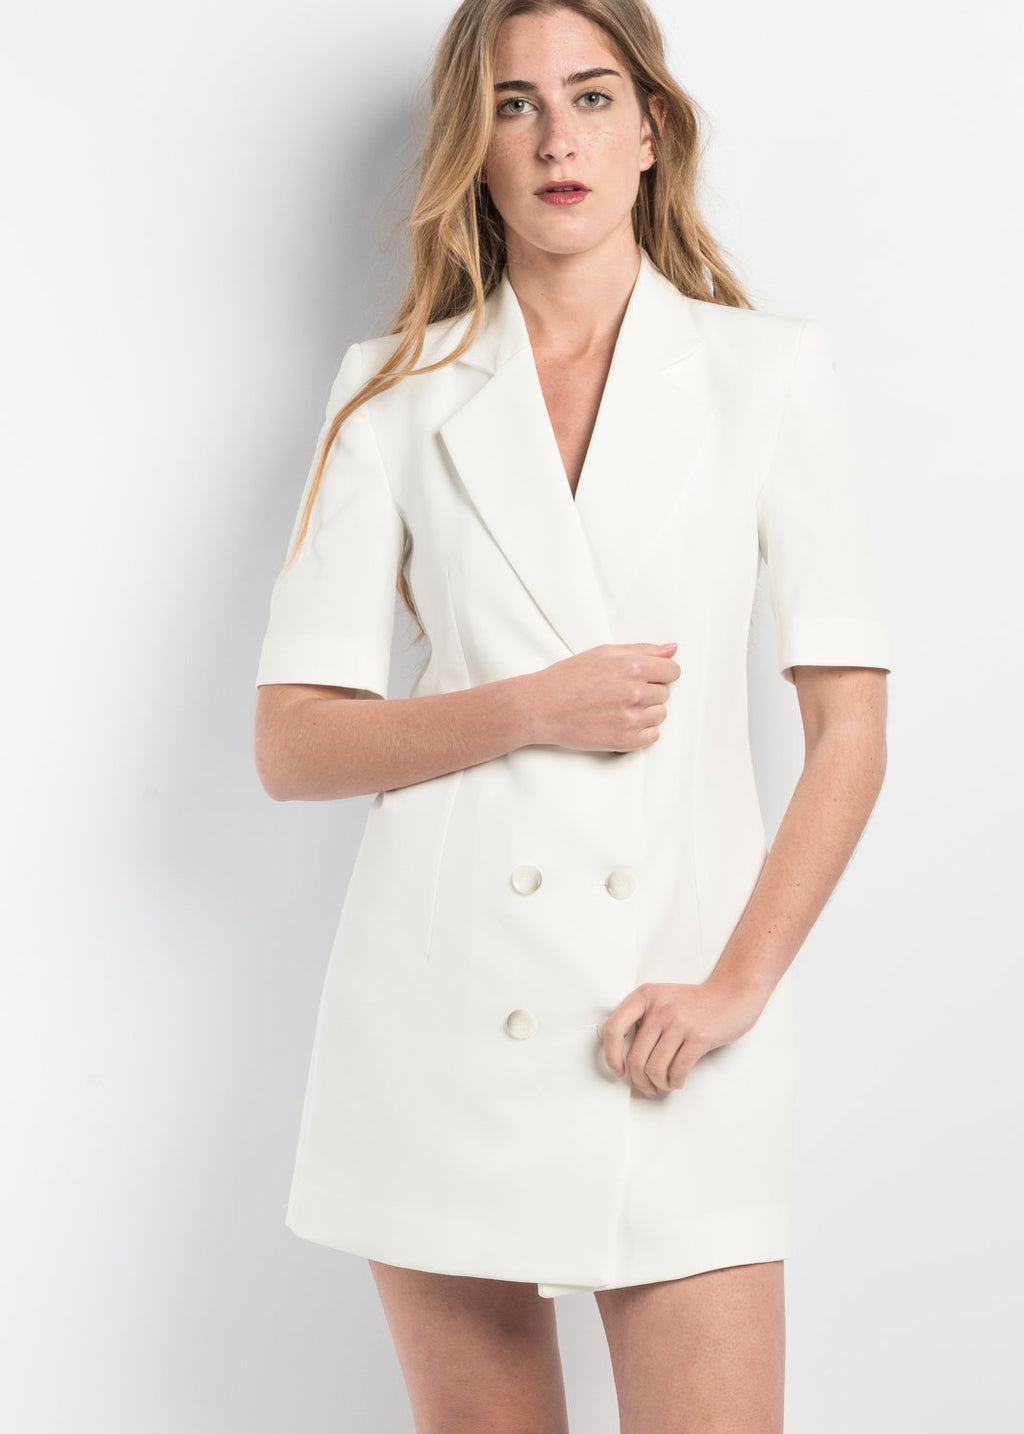 Doble breasted 2/4 Sleeve Blazer Dress